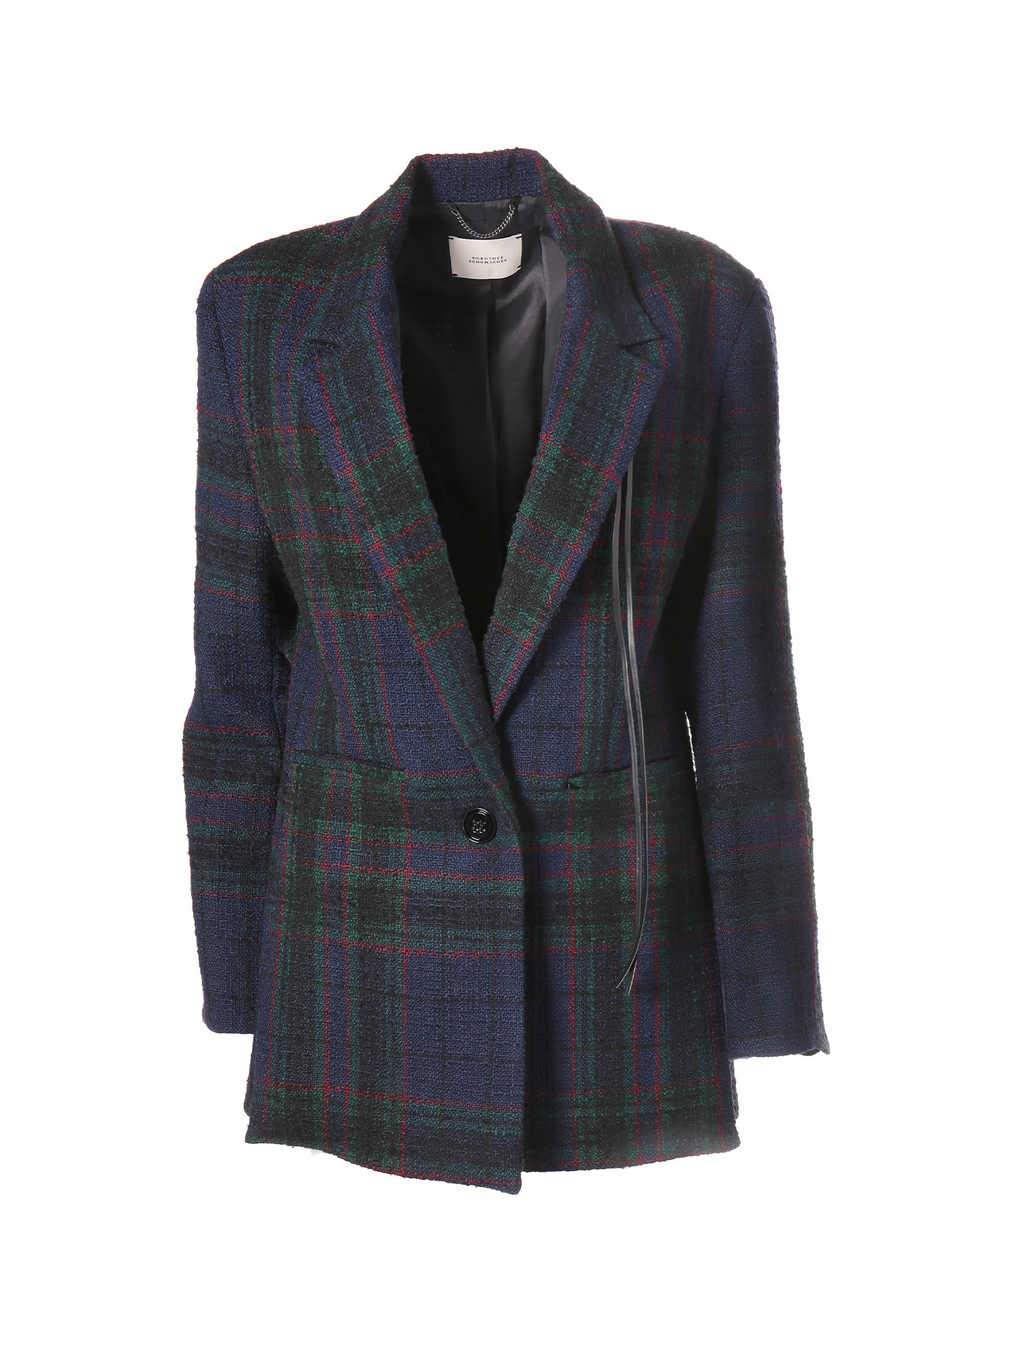 Dorothee Schumacher Tweeted Check Jacket - Tartan Plaid